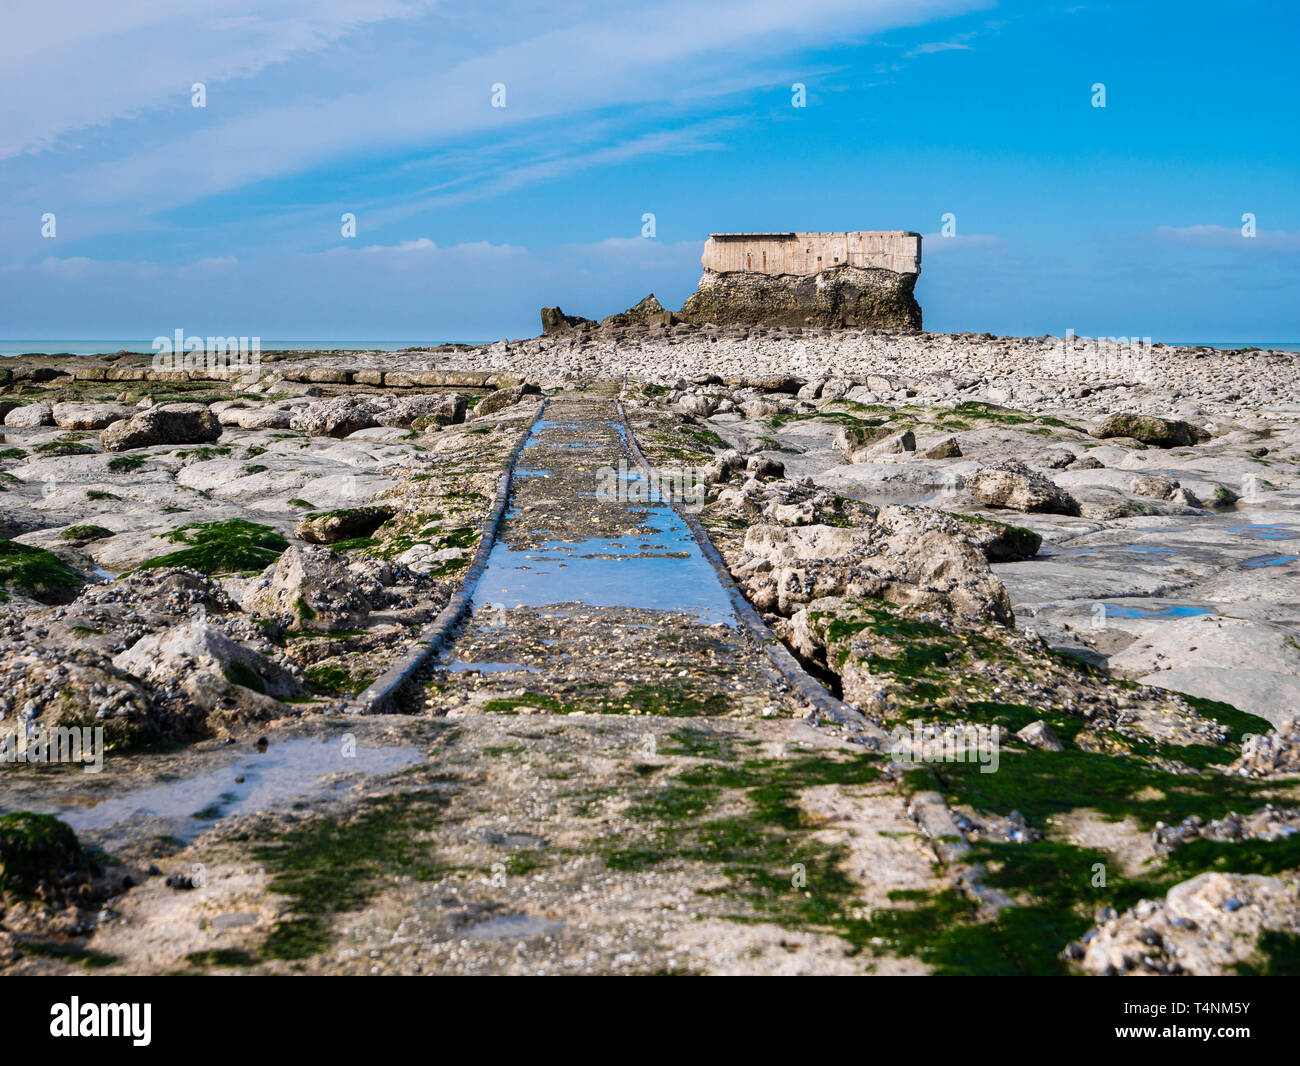 Ancient railtracks leading through rocks to an abandoned Fort on the coastline - Stock Image